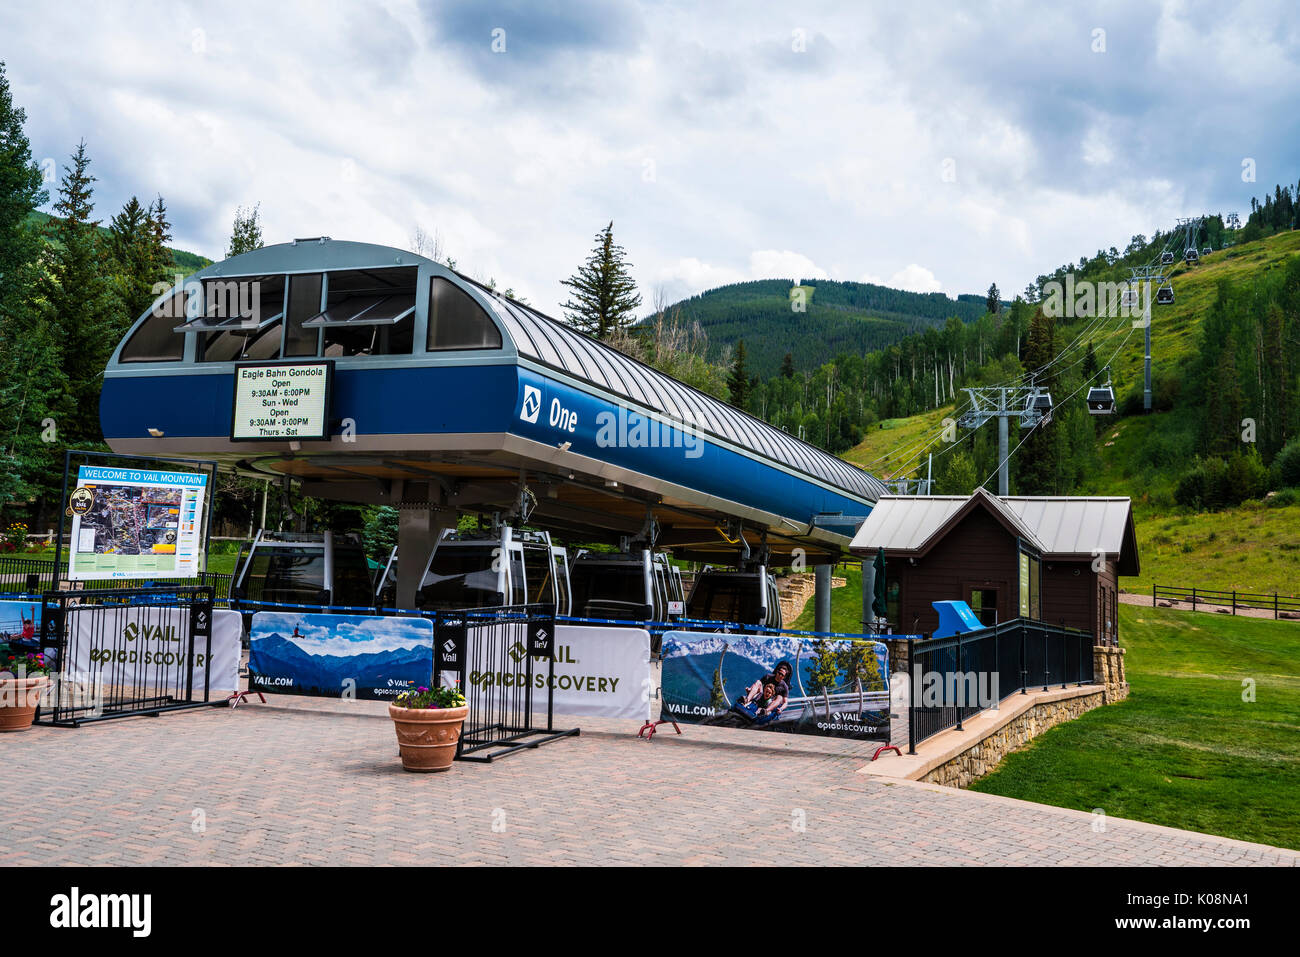 Gondola liift in Vail Ski Resort, Vail, CO, United States Stock Photo